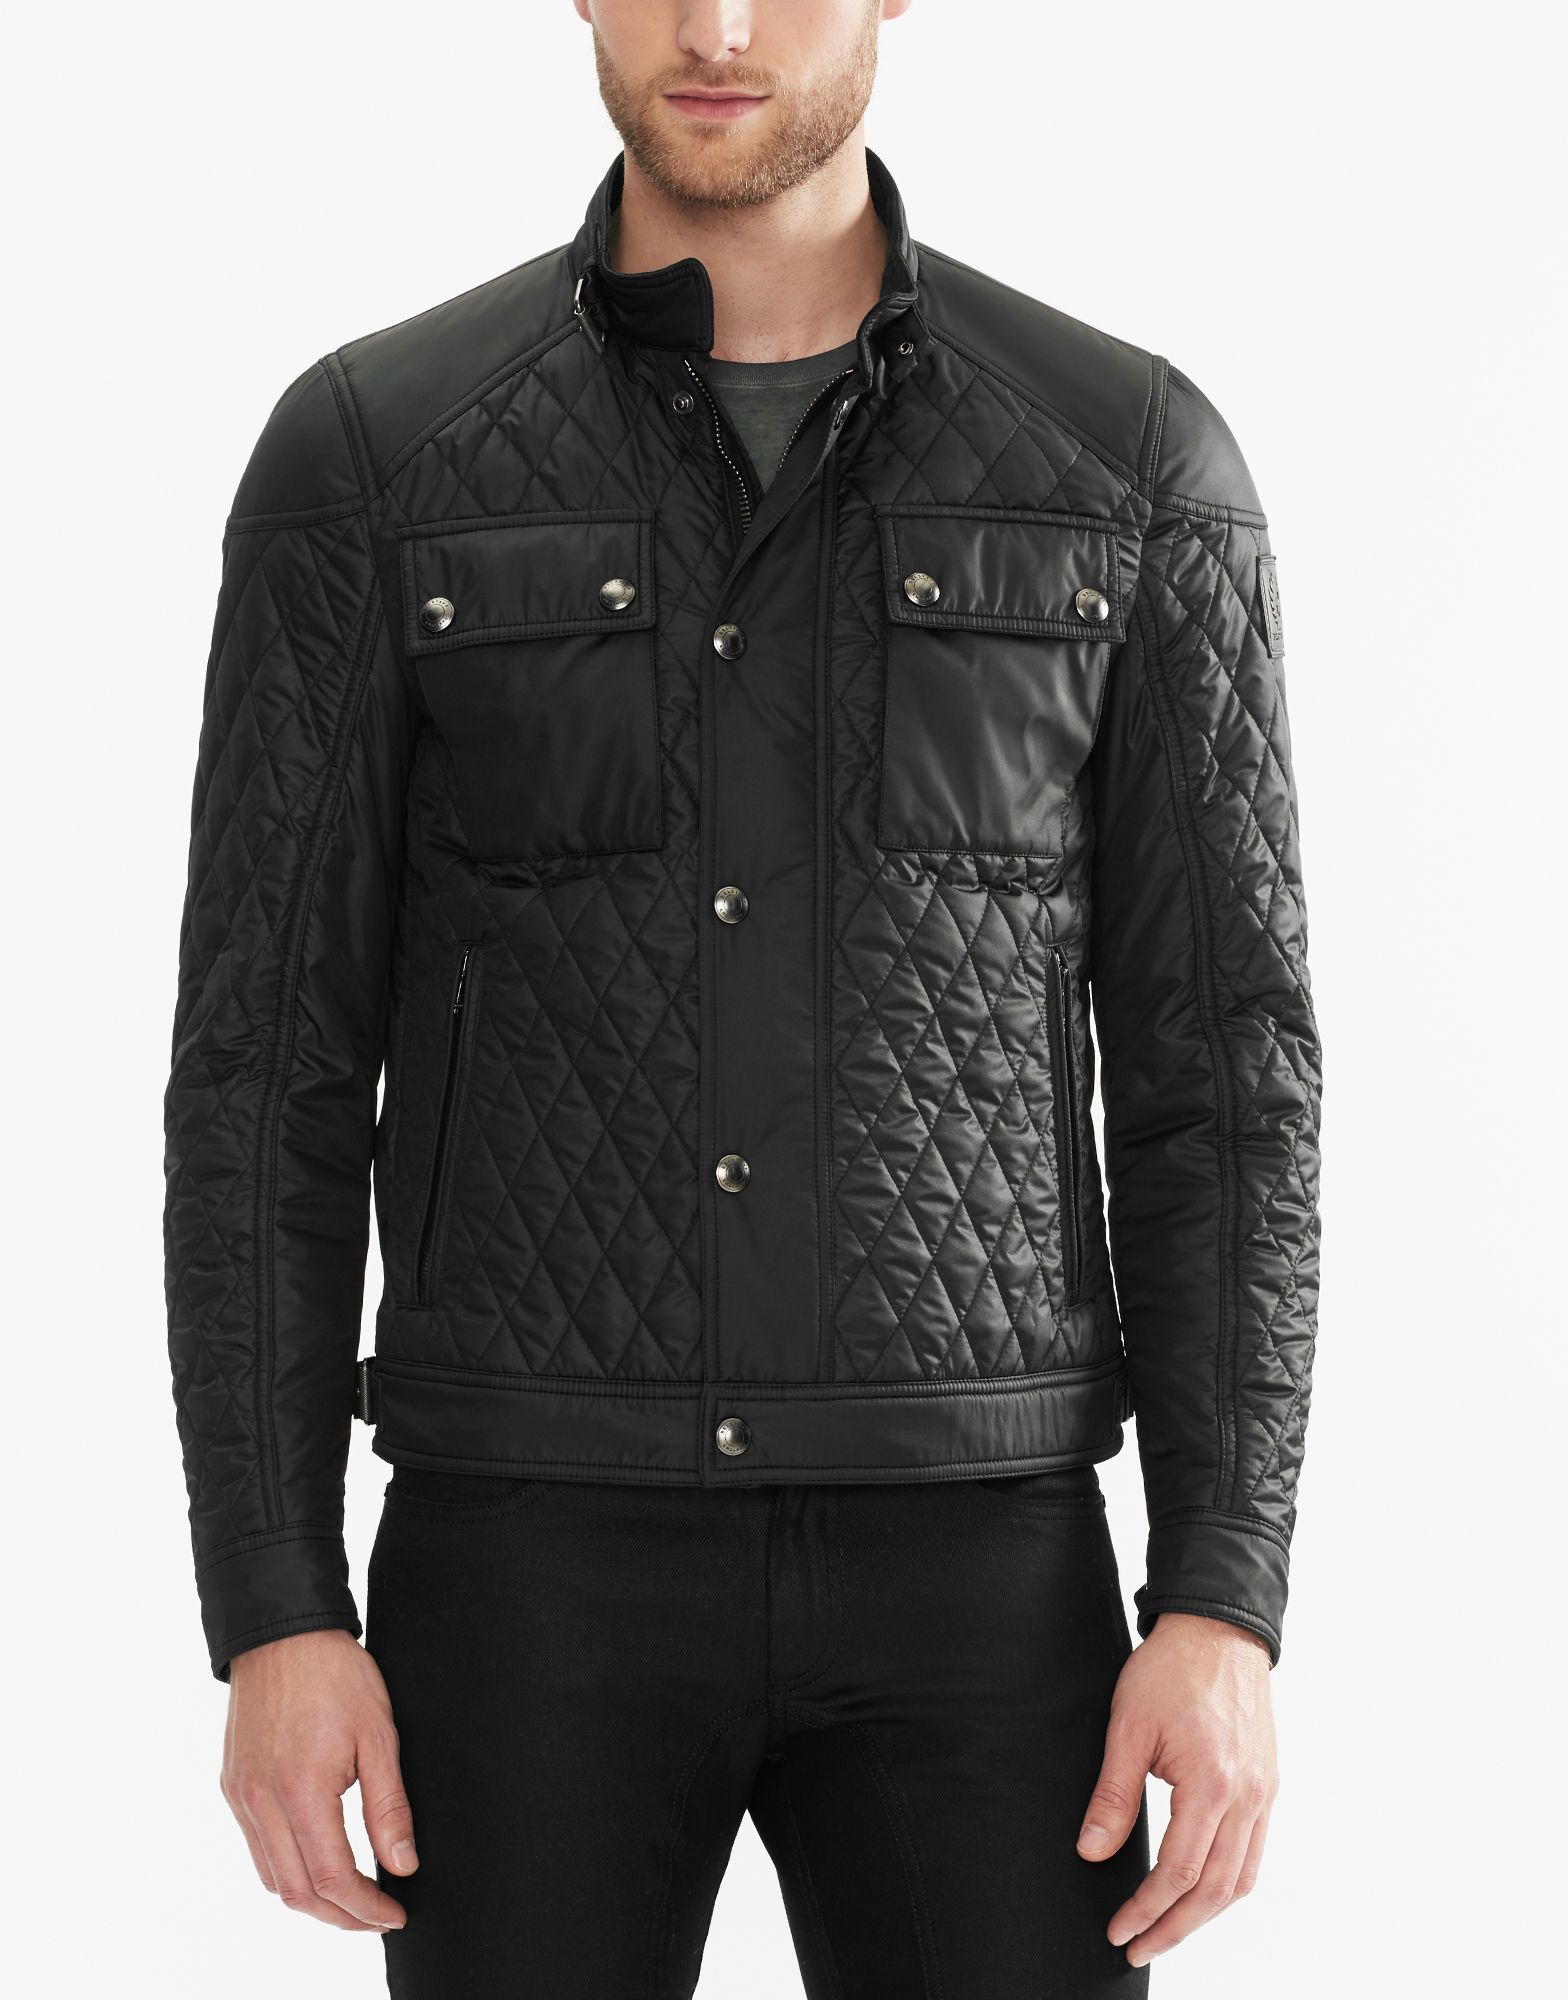 3bbd1c884 Belstaff - Racemaster Quilt - In Black Technical Quilt | Belstaff in ...